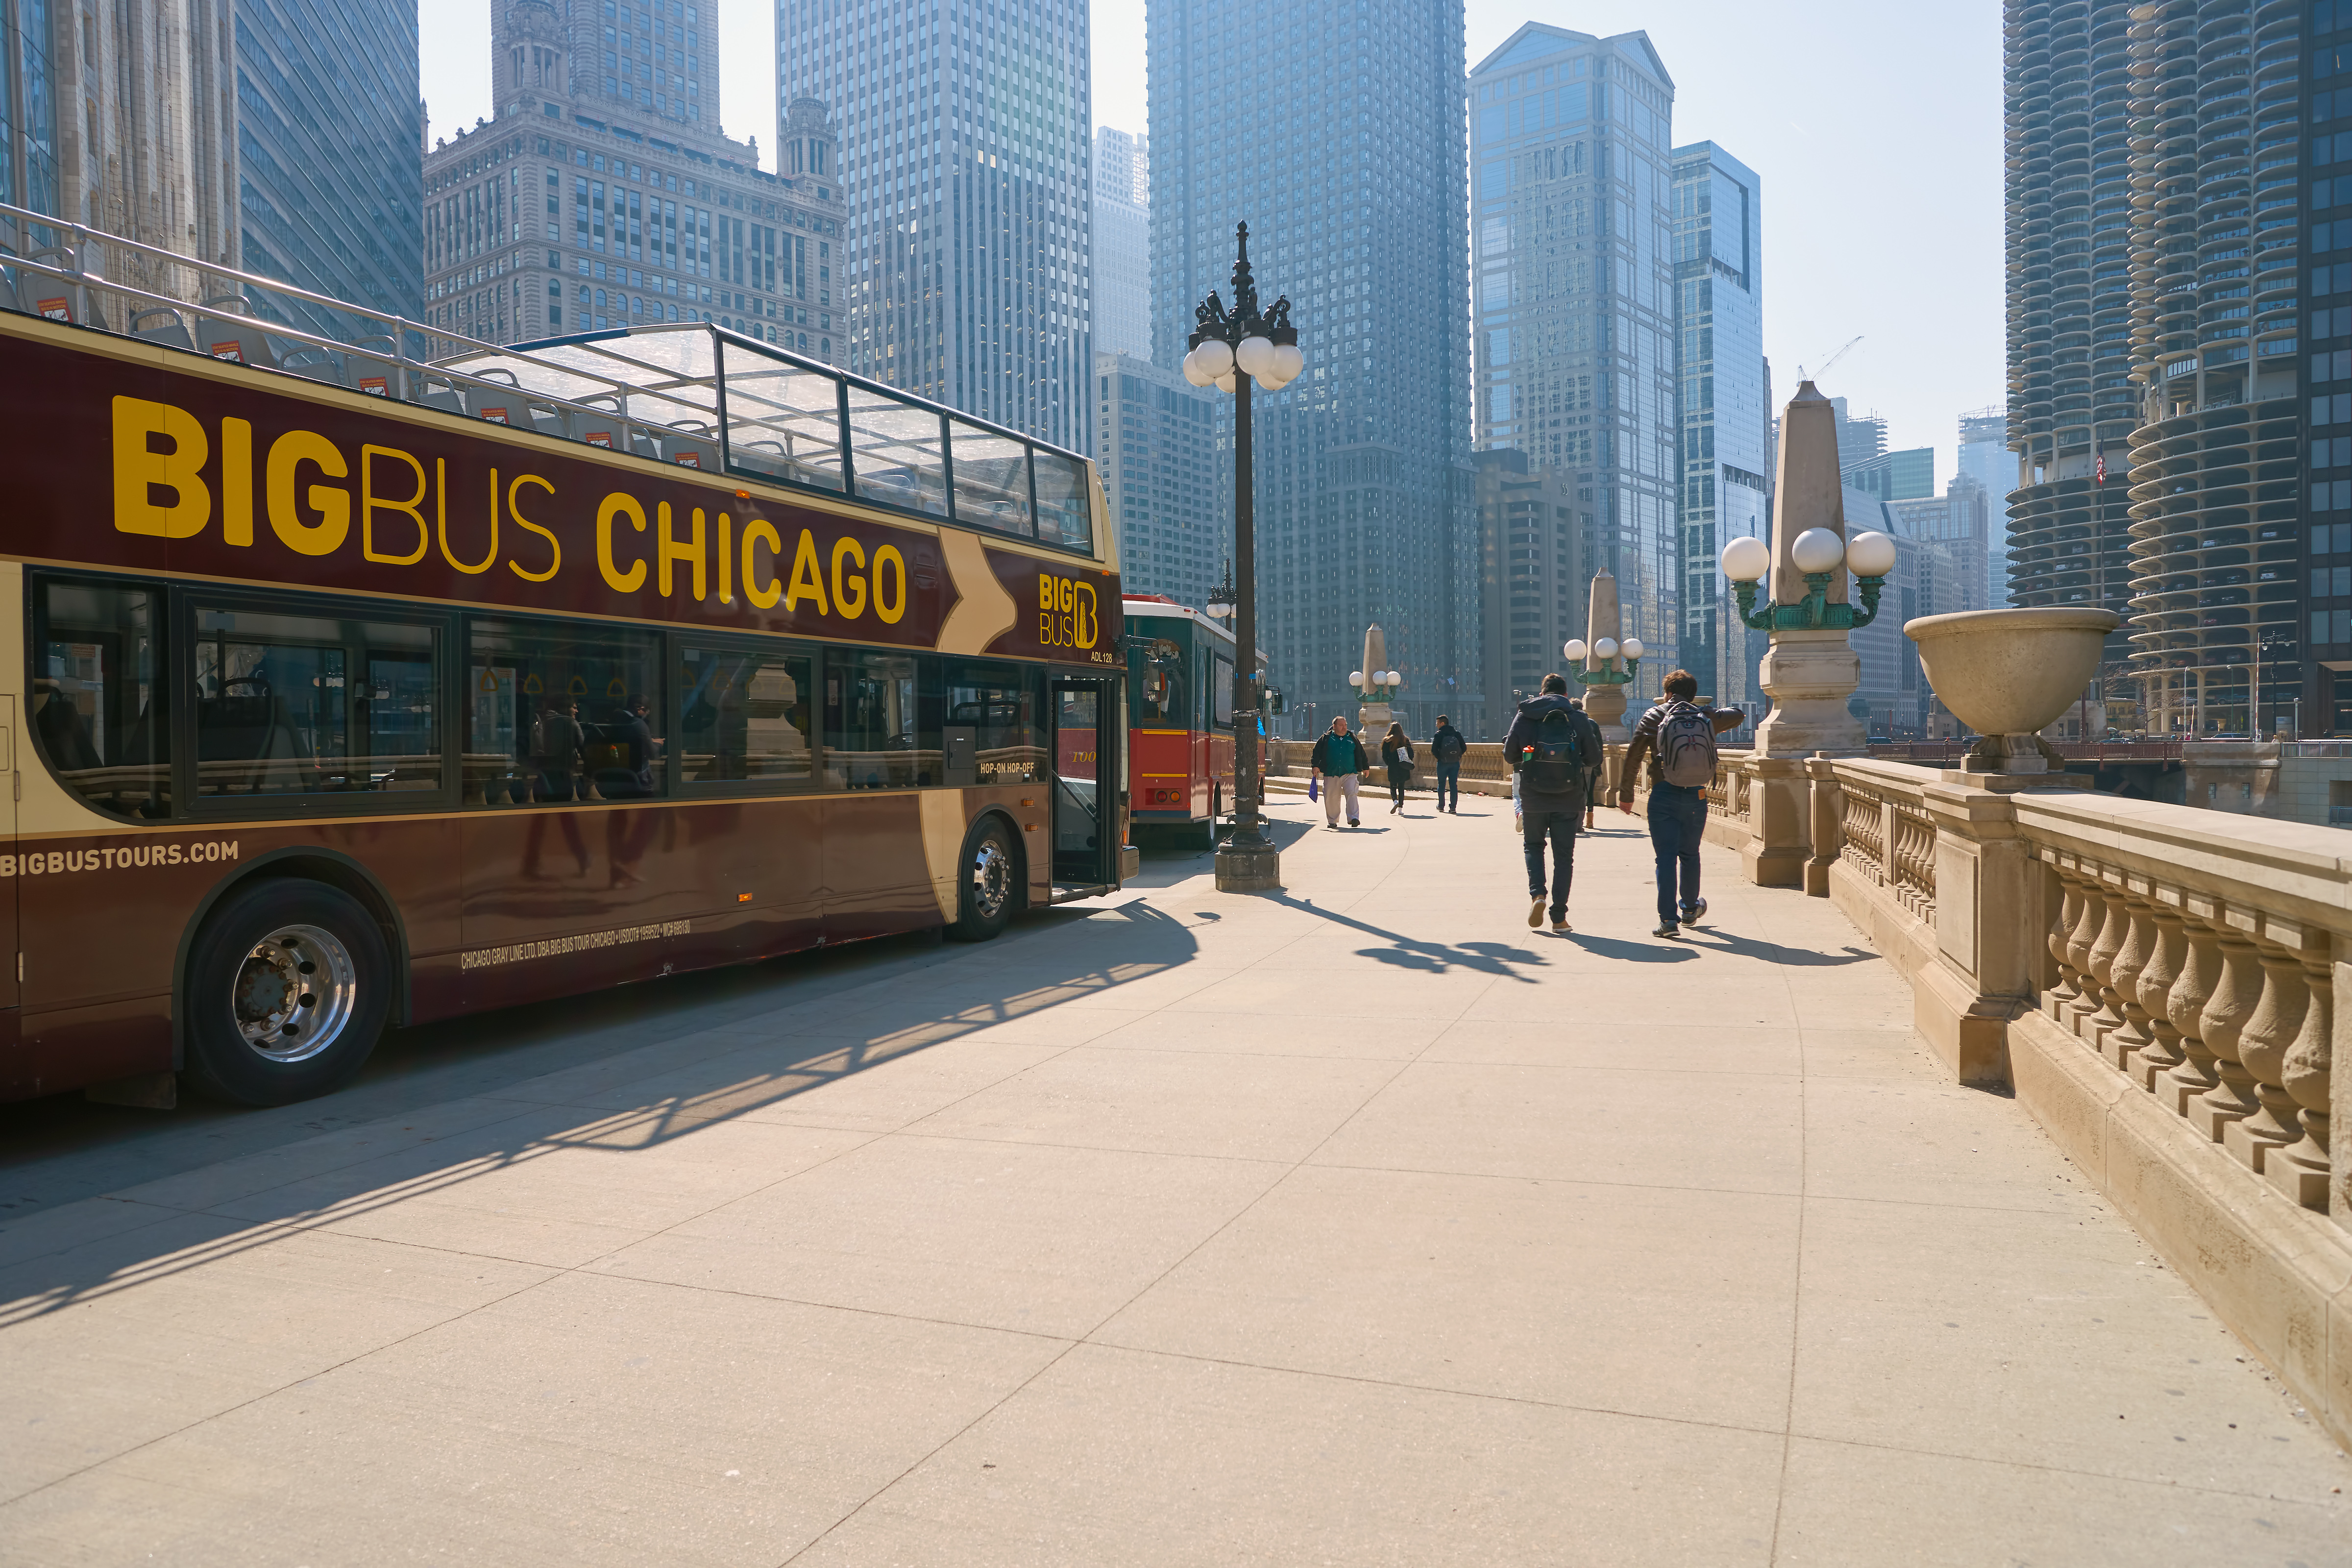 Chicago Tours: Sightseeing, Trolley & Double Decker Buses on philadelphia trolley map, chicago bridge tour map, chicago food map, chicago california map, chicago visitors map, chicago pedway map, chicago golf map, chicago street map, chicago canada map, chicago walking tour map, chicago museum map, chicago beaches map, hop on hop off chicago map, chicago christmas market 2014, chicago on us map, chicago aquarium map, chicago shopping map, chicago bus map, scottsdale trolley map, chicago water taxi,